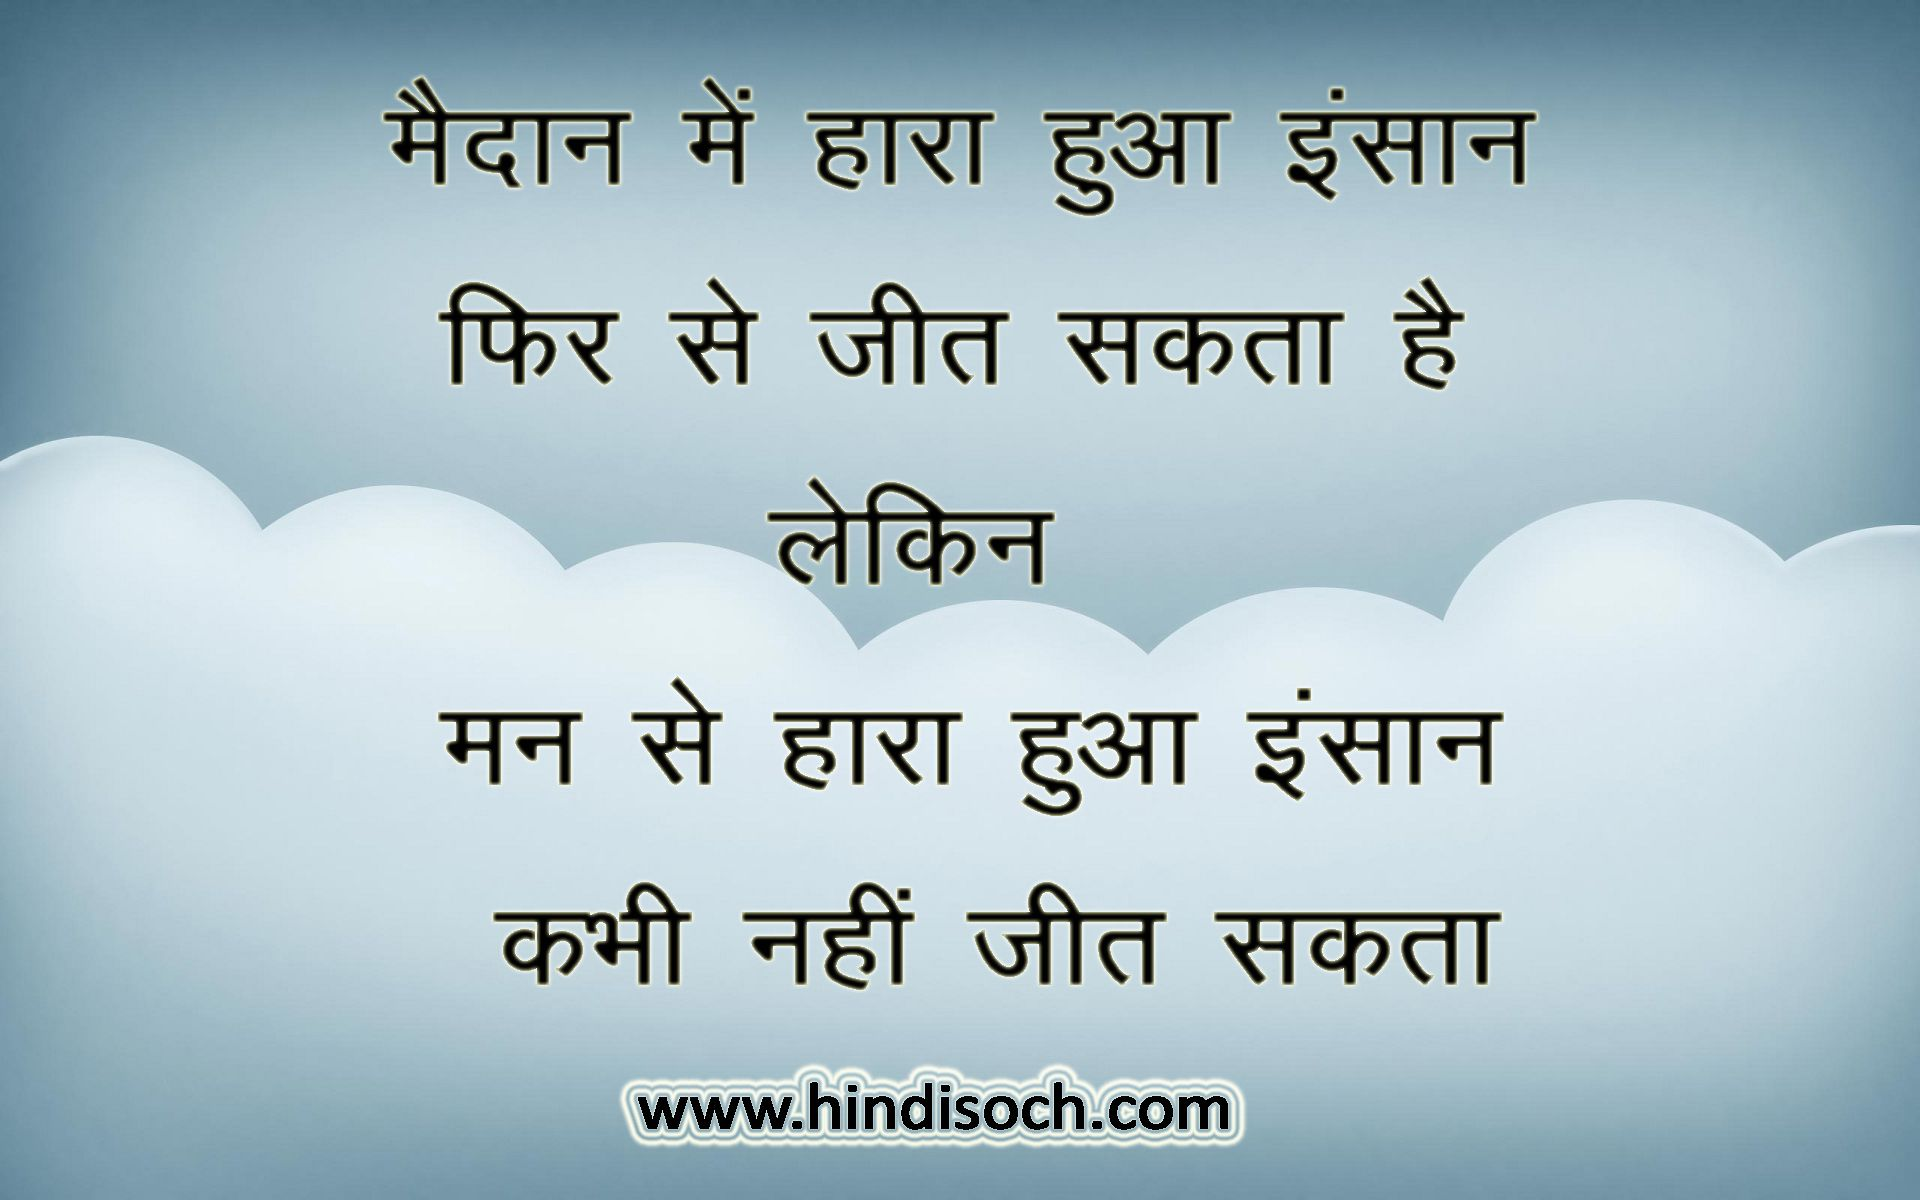 Best Life Quotes 50 Life Inspirational Motivational Quotes In Hindi With Images